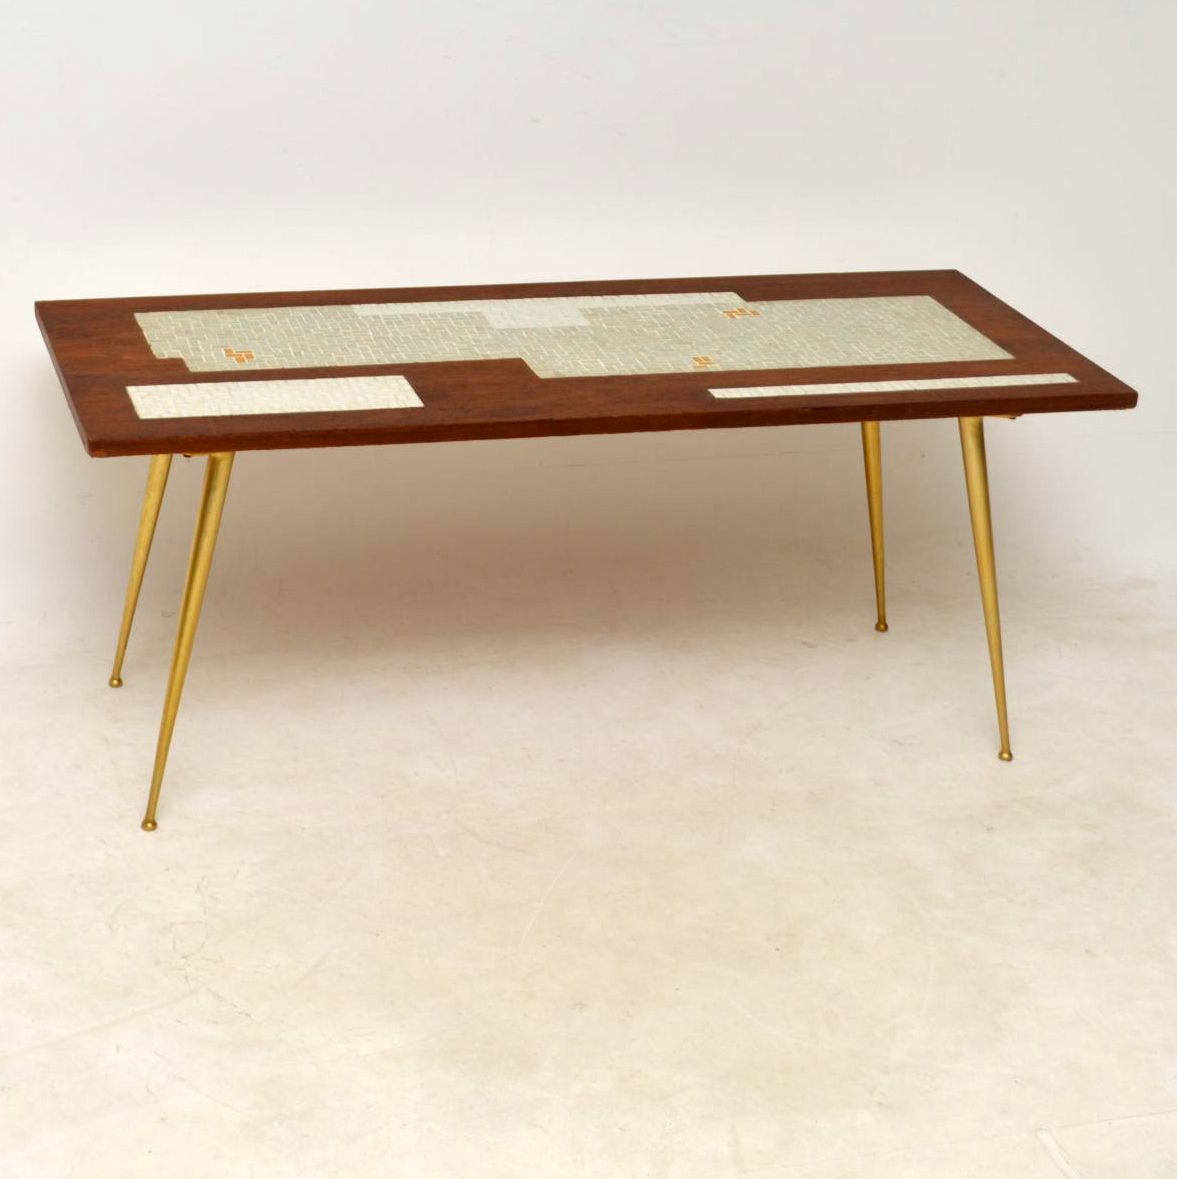 Second Hand Teak Coffee Table: 1960's Teak & Brass Tiled Top Coffee Table